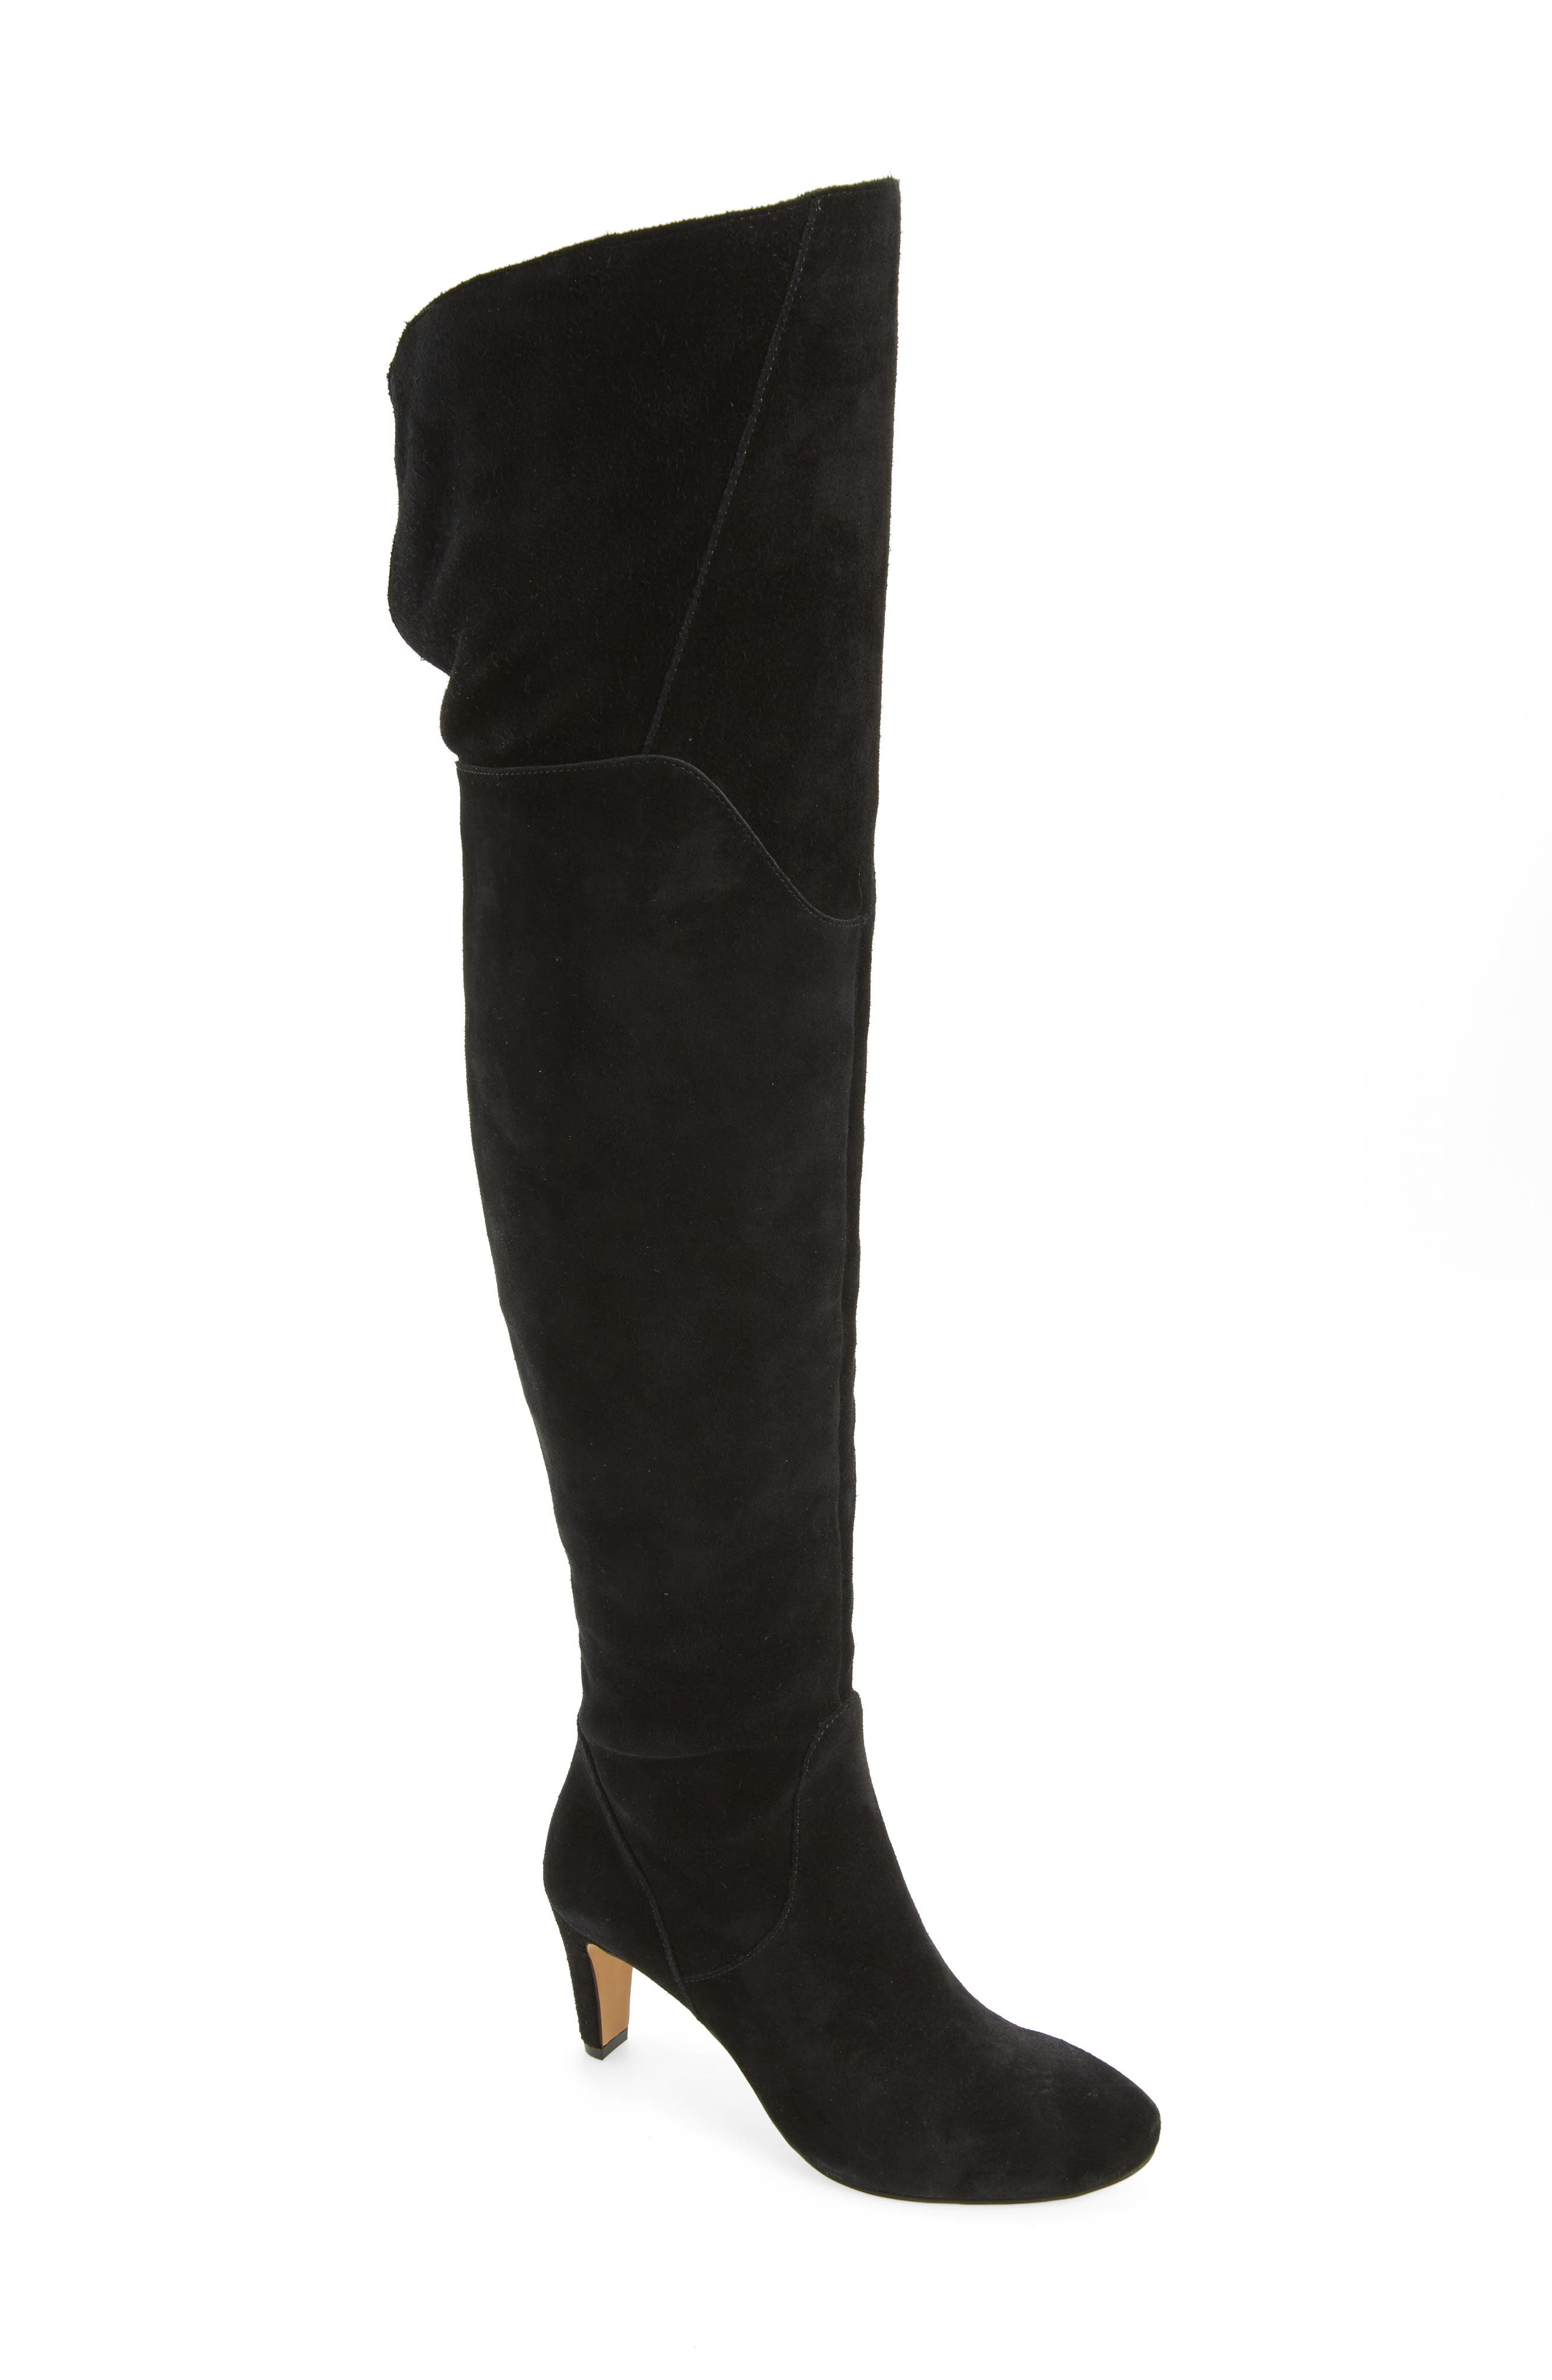 Armaceli Over the Knee Boot,                         Main,                         color,